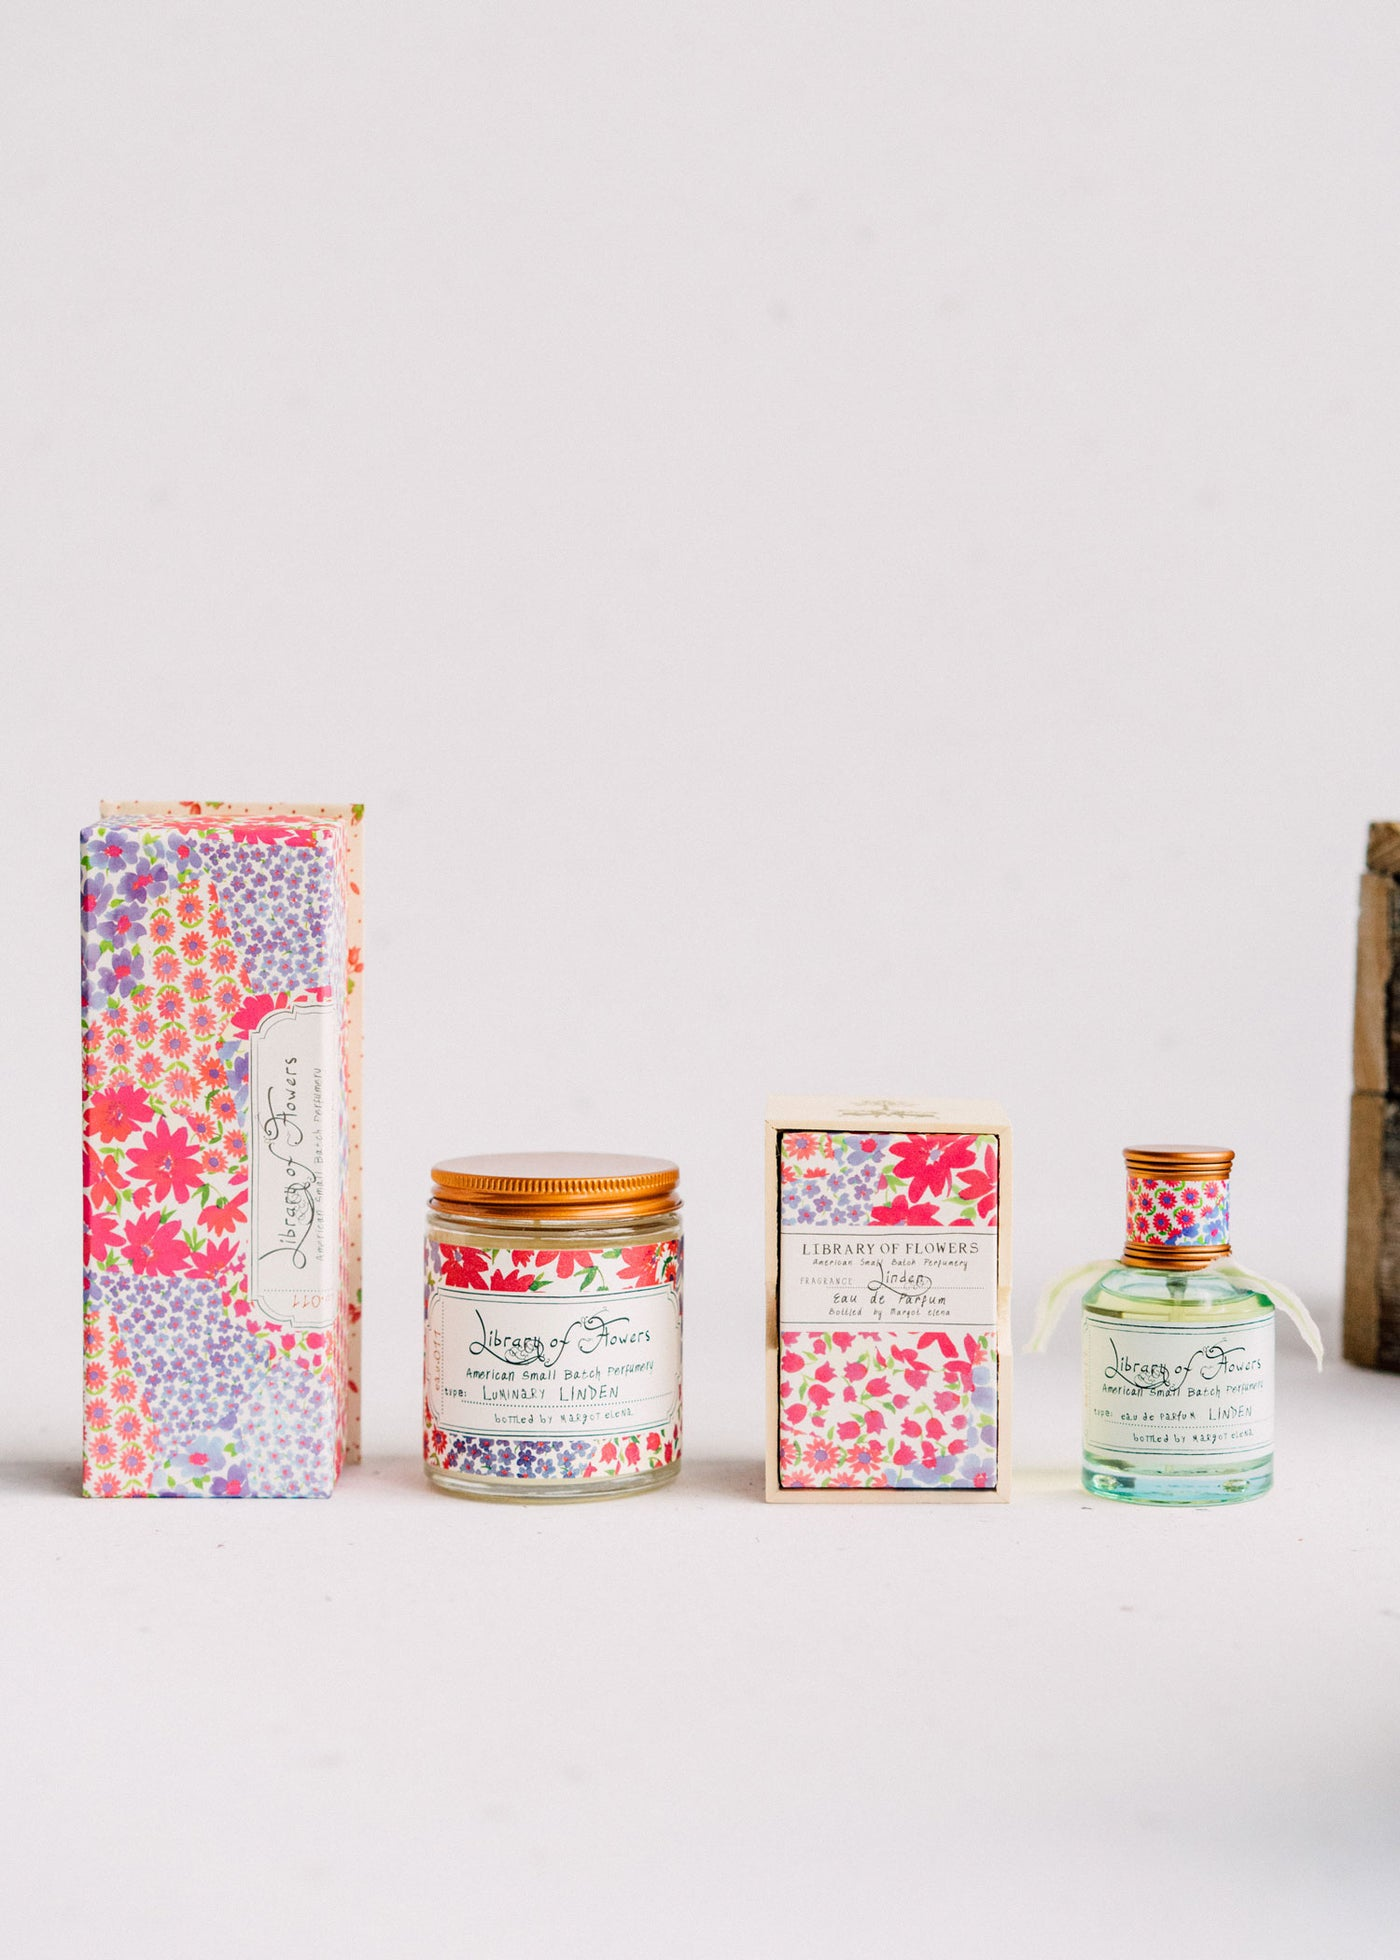 Linden Trio | Perfume, Lotion & Scented Candle | Library of Flowers